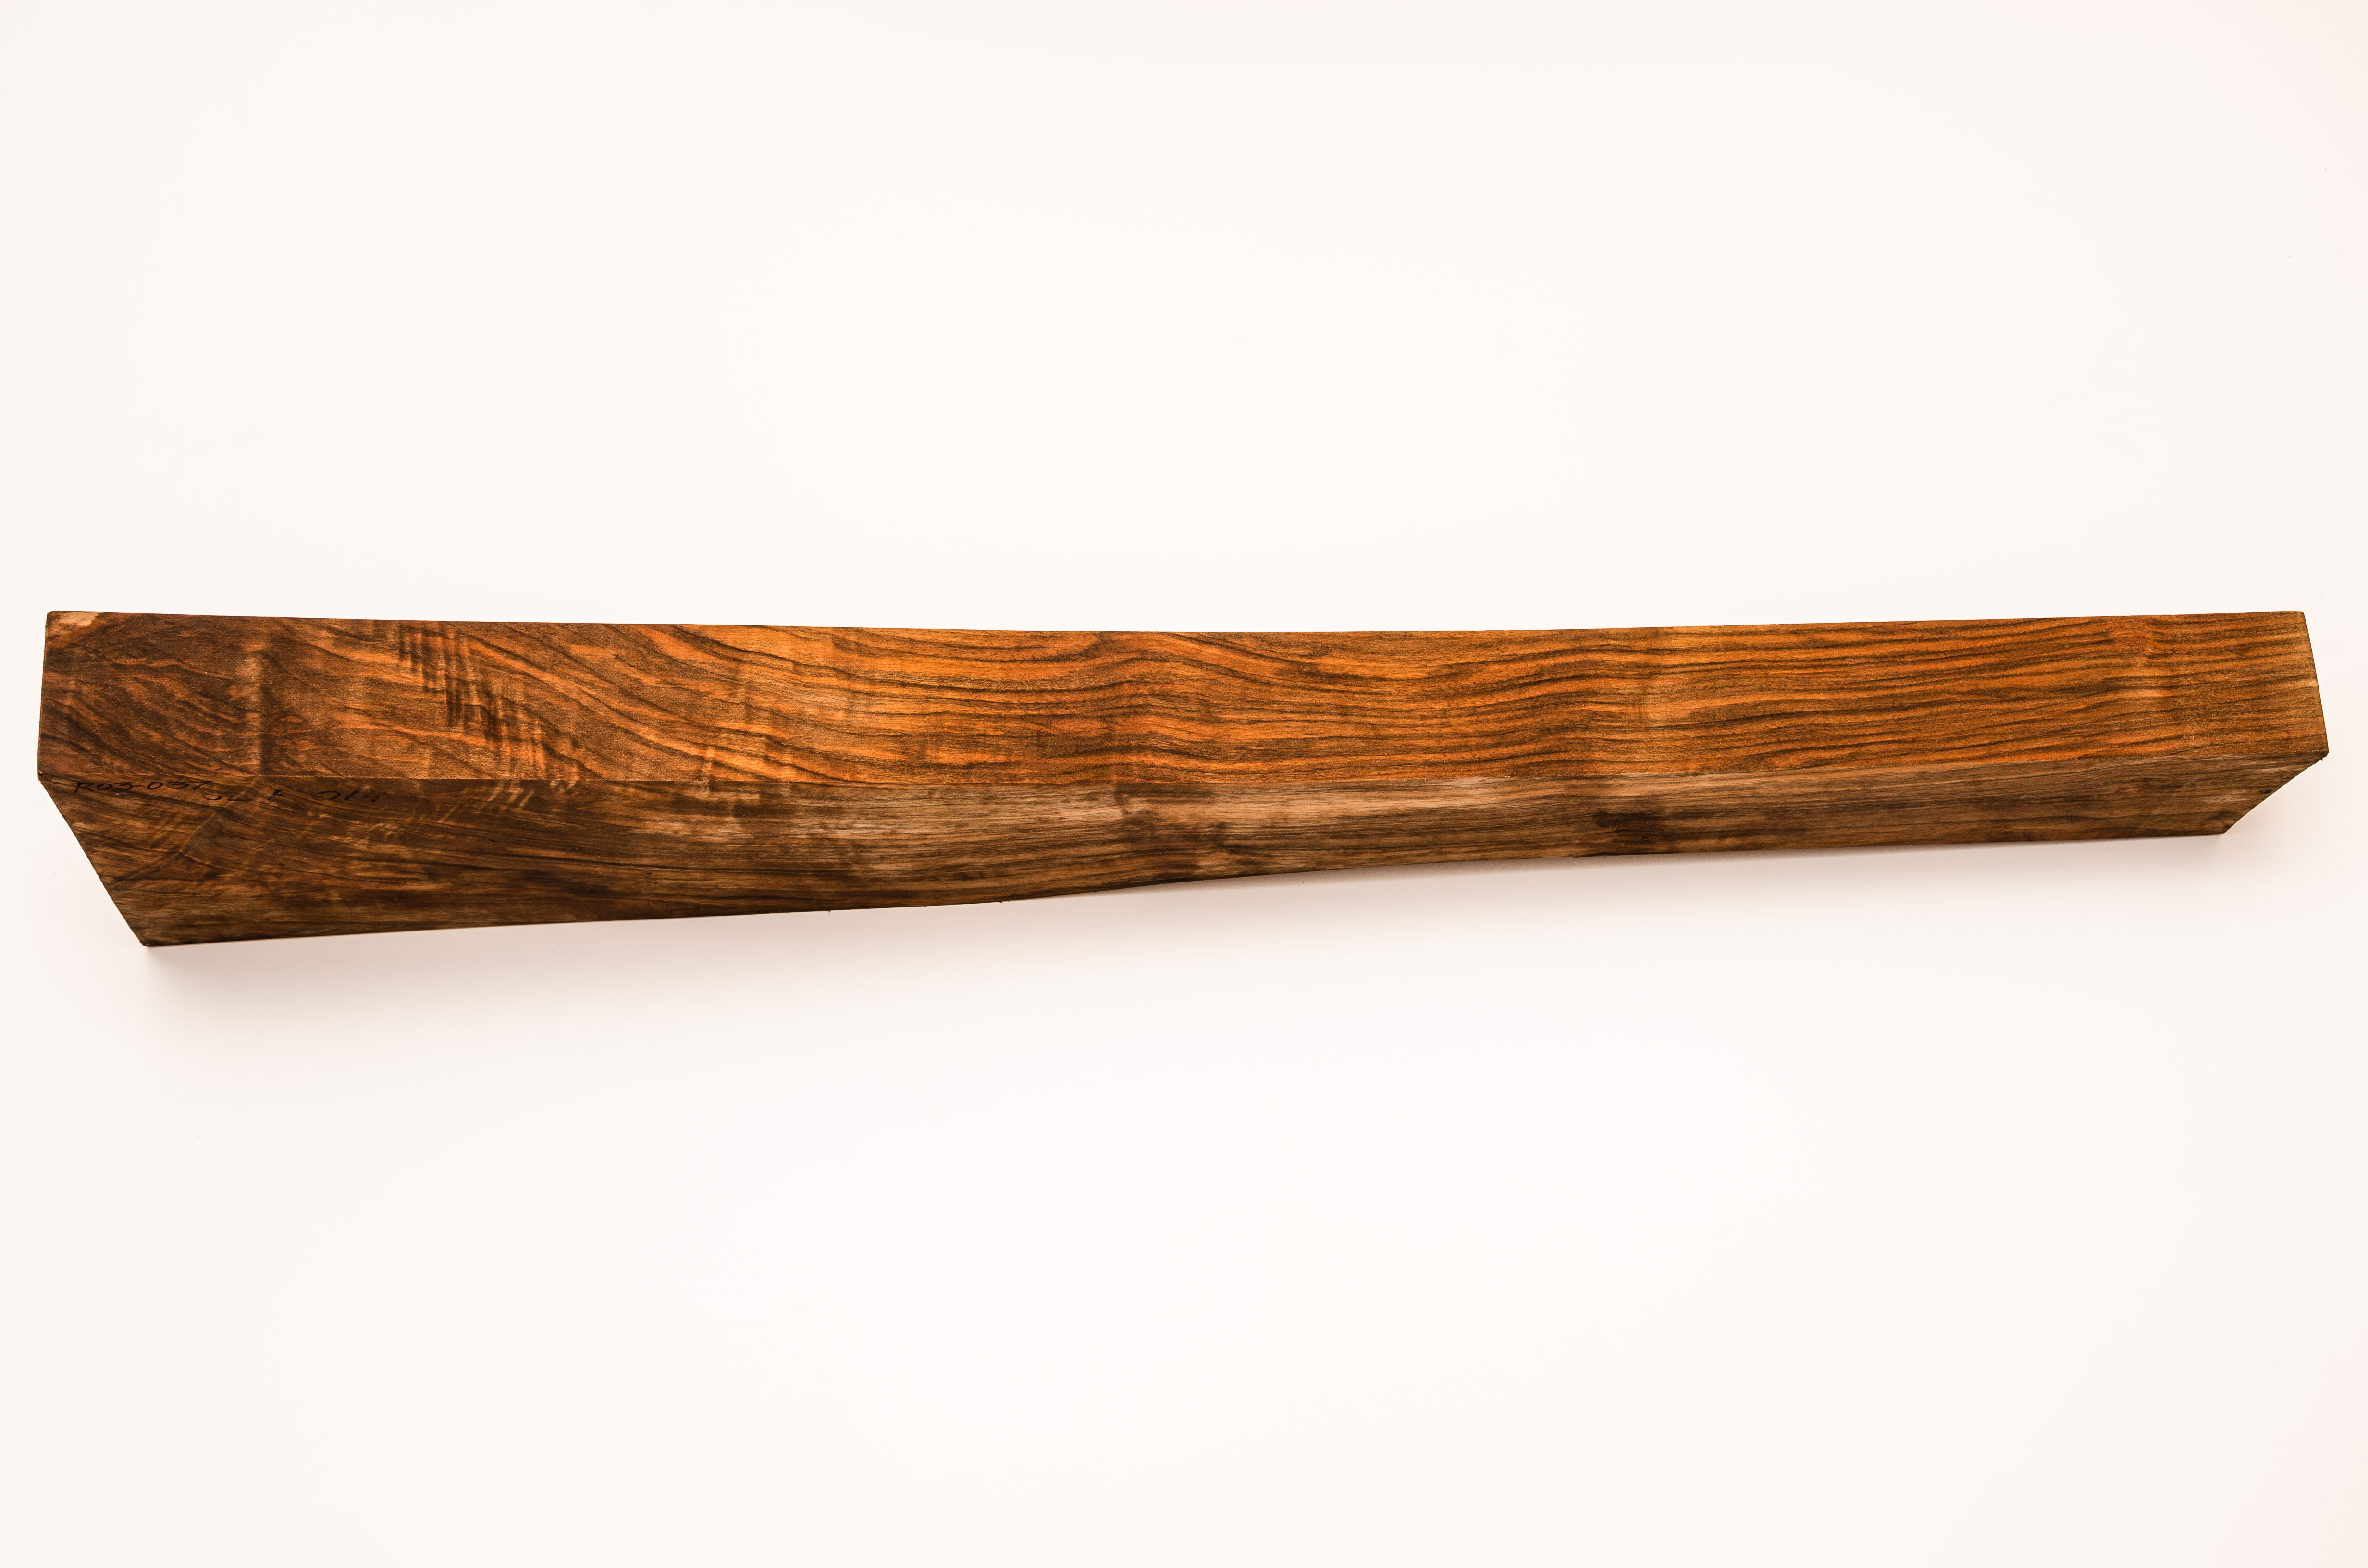 walnut_stock_blanks_for_guns_and_rifles-1179